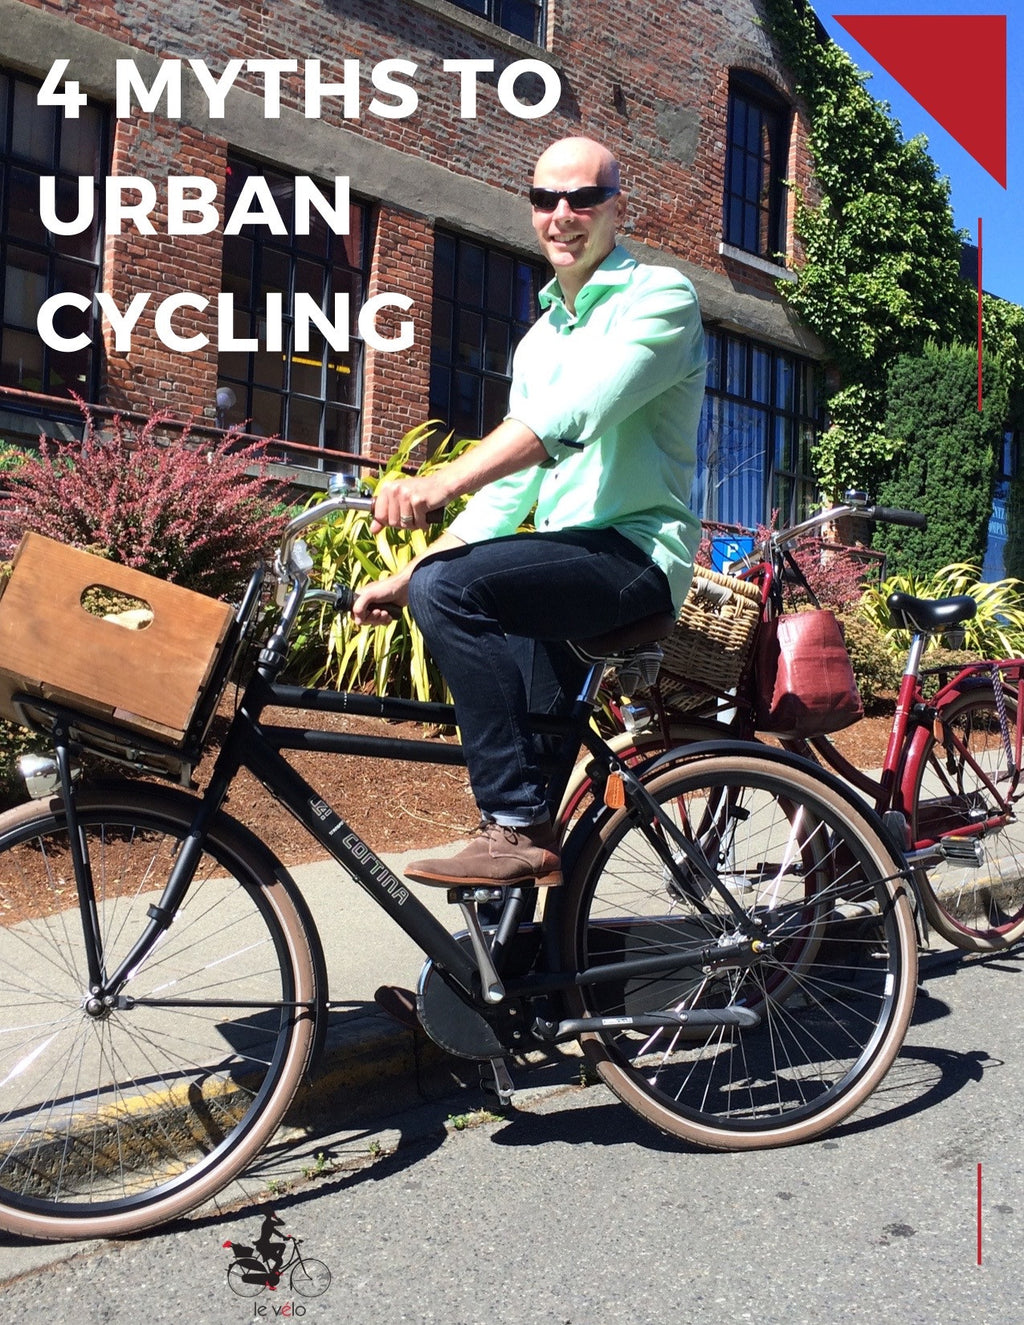 4 Myths to Urban Cycling